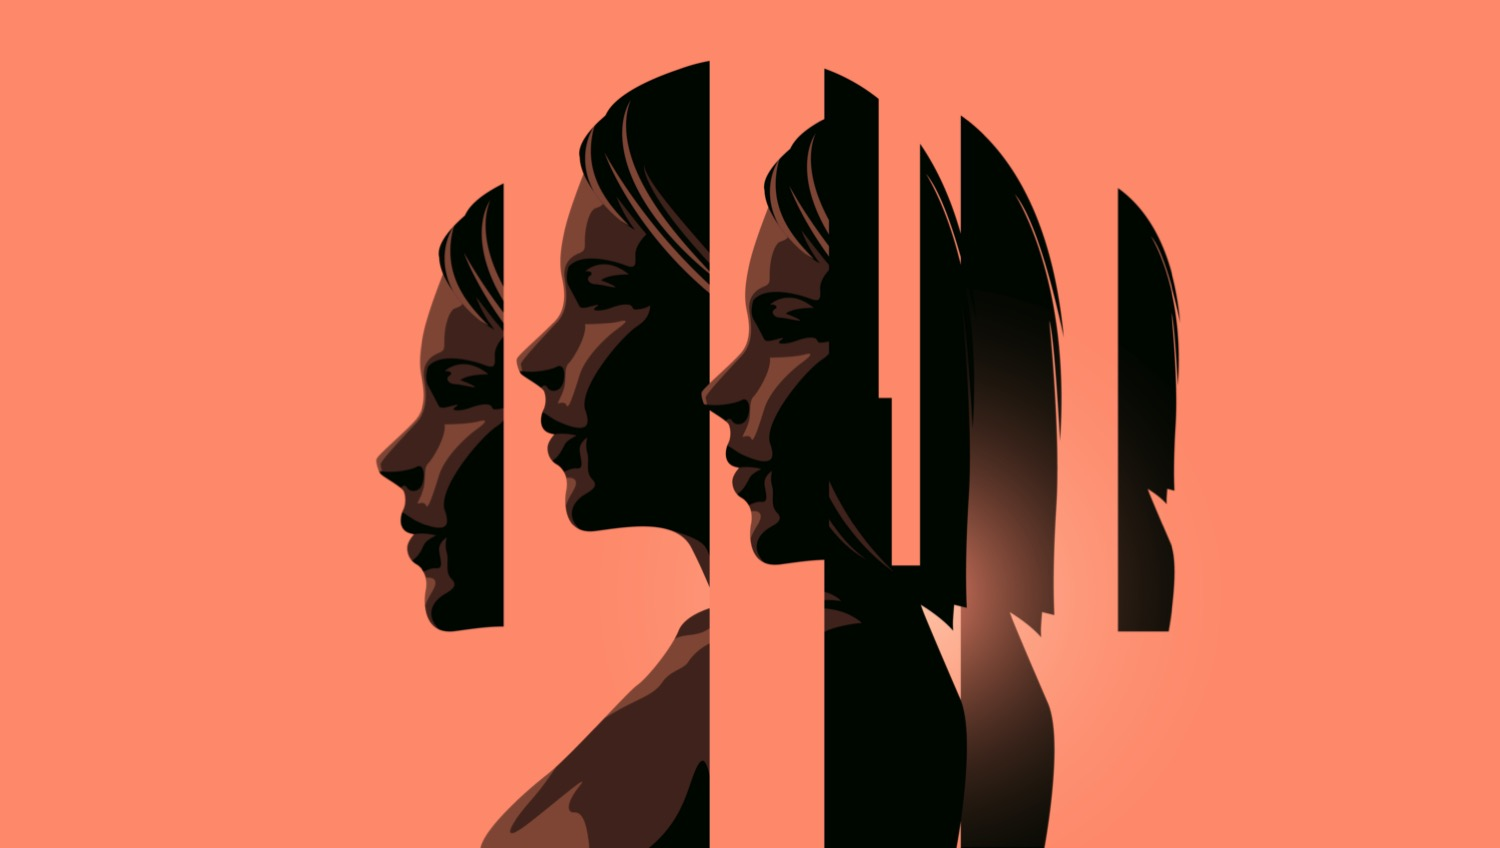 an abstract image of slices of a woman's face spaced apartphotographed from the side